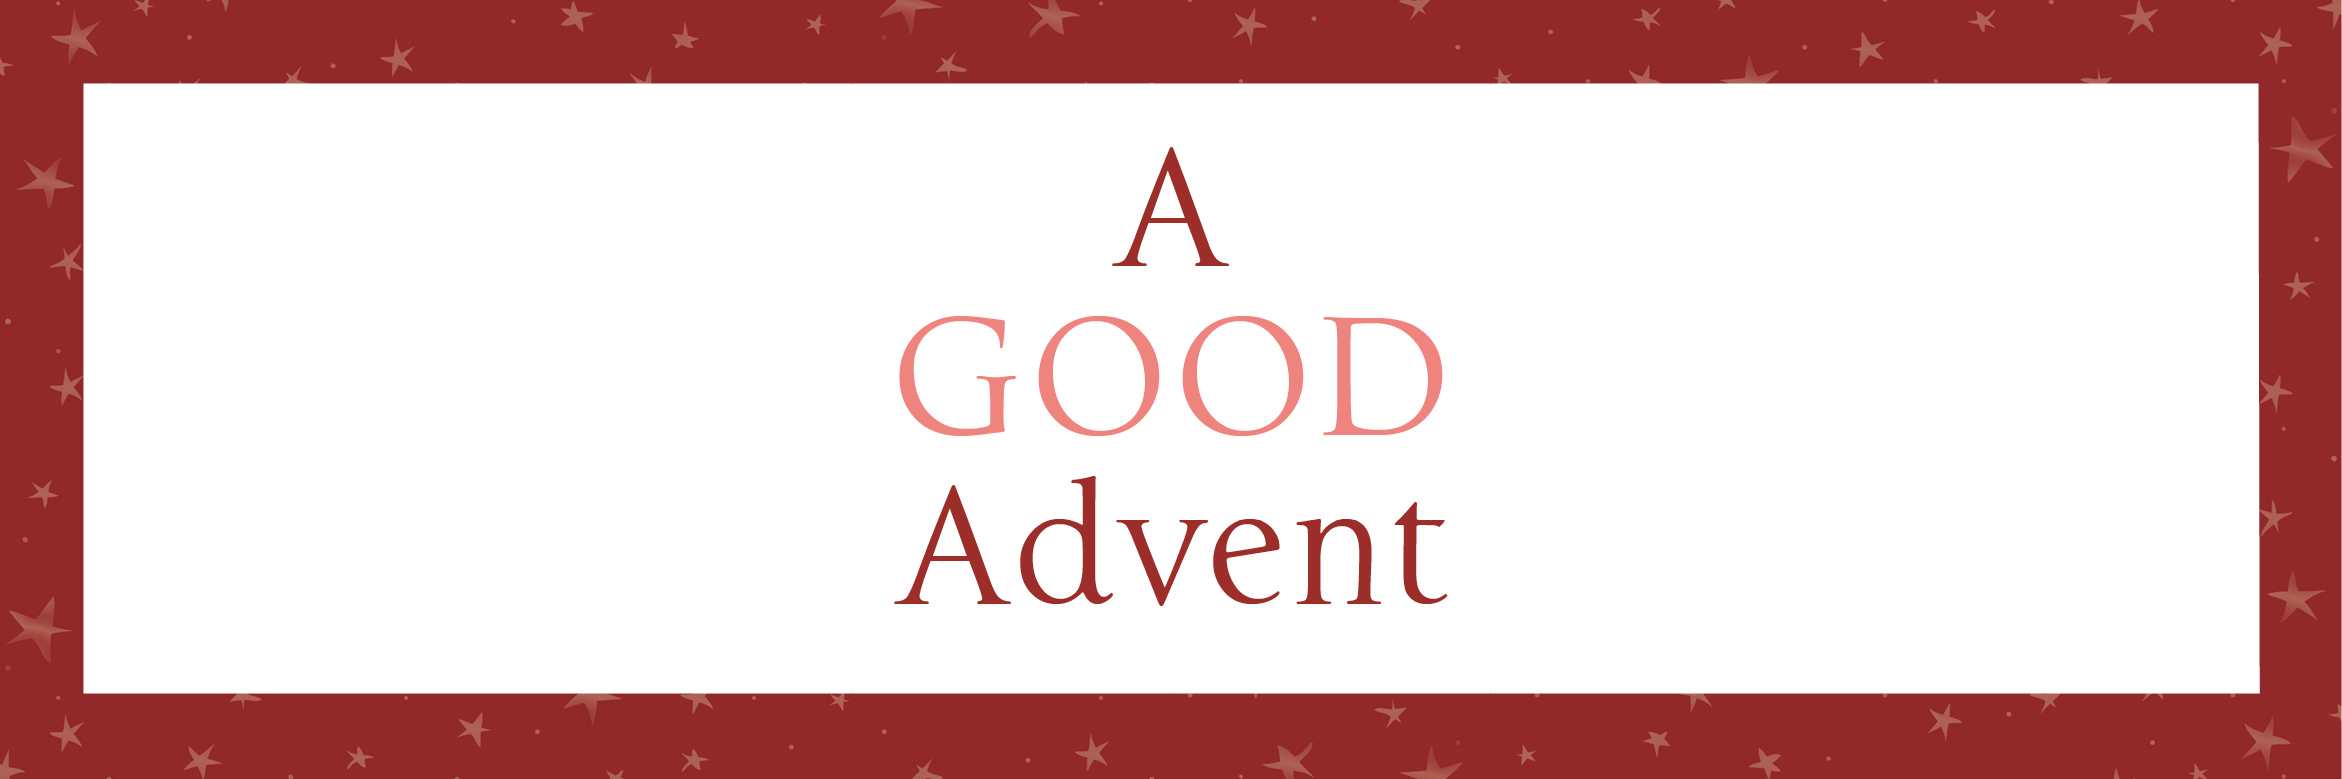 A Good Advent